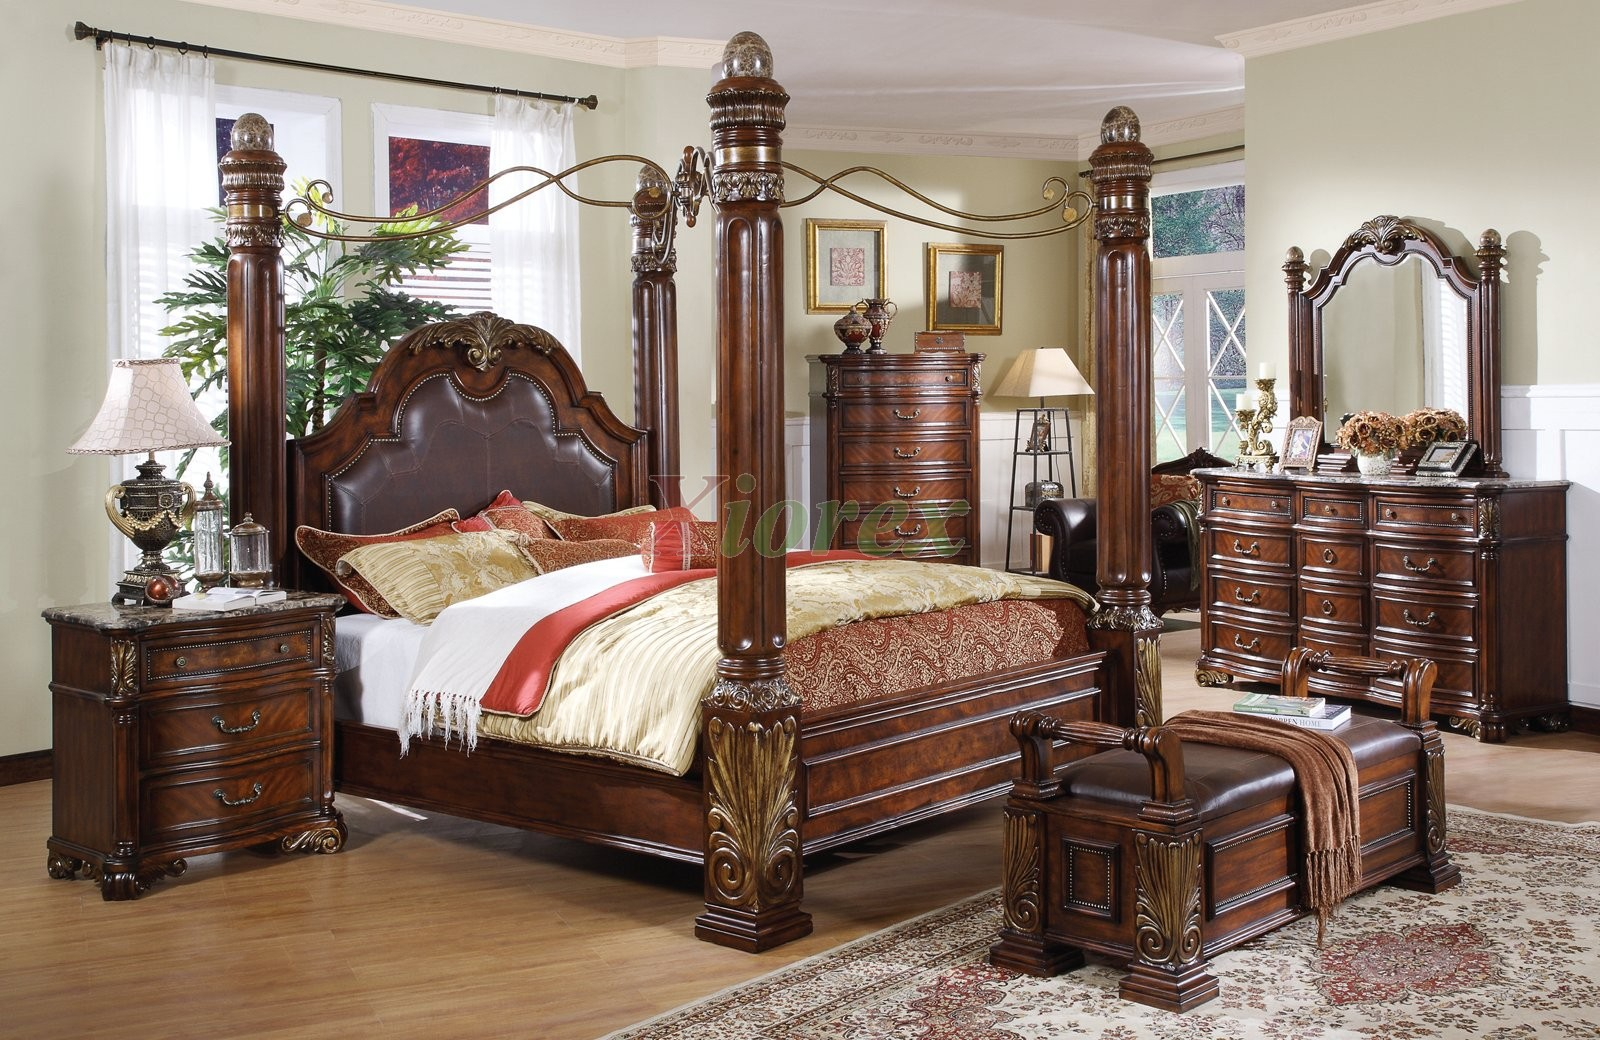 appealing king size canopy bed